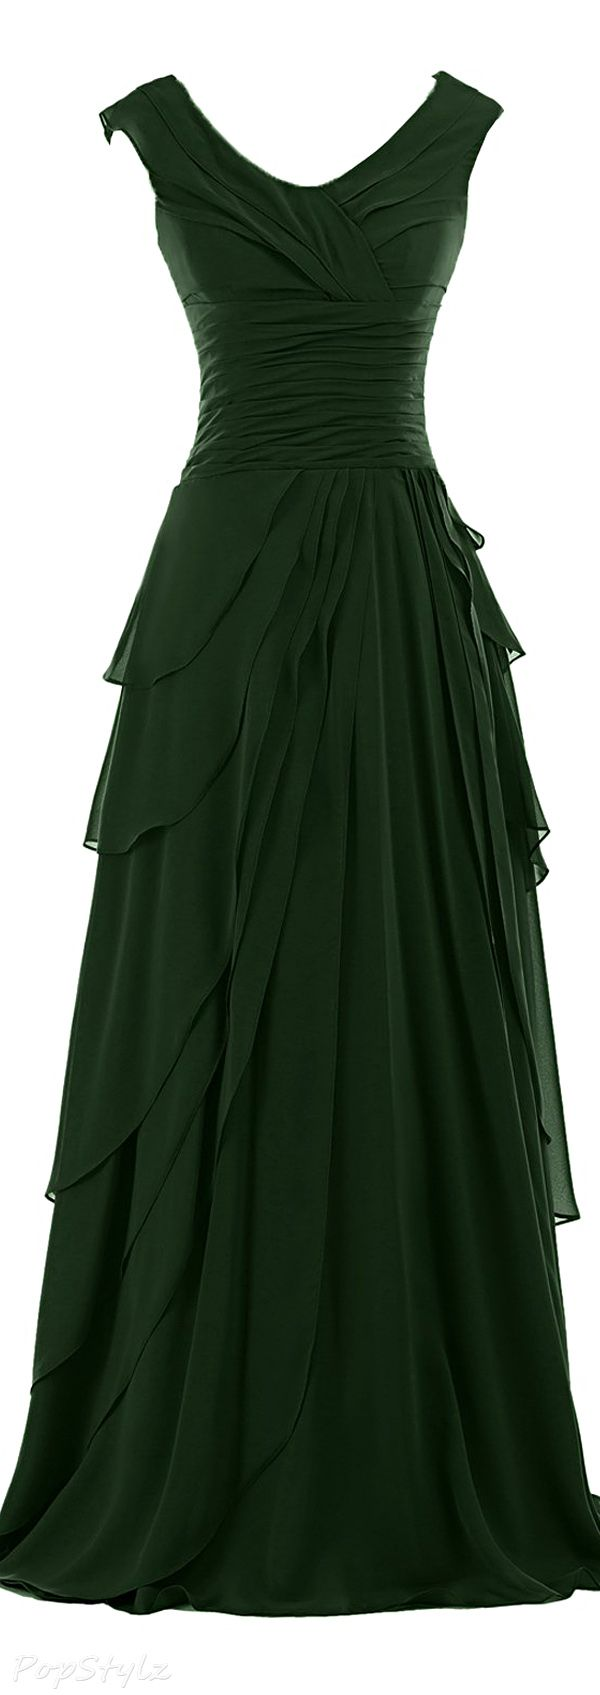 sunvary ruffled chiffon a line evening gown for a. Black Bedroom Furniture Sets. Home Design Ideas